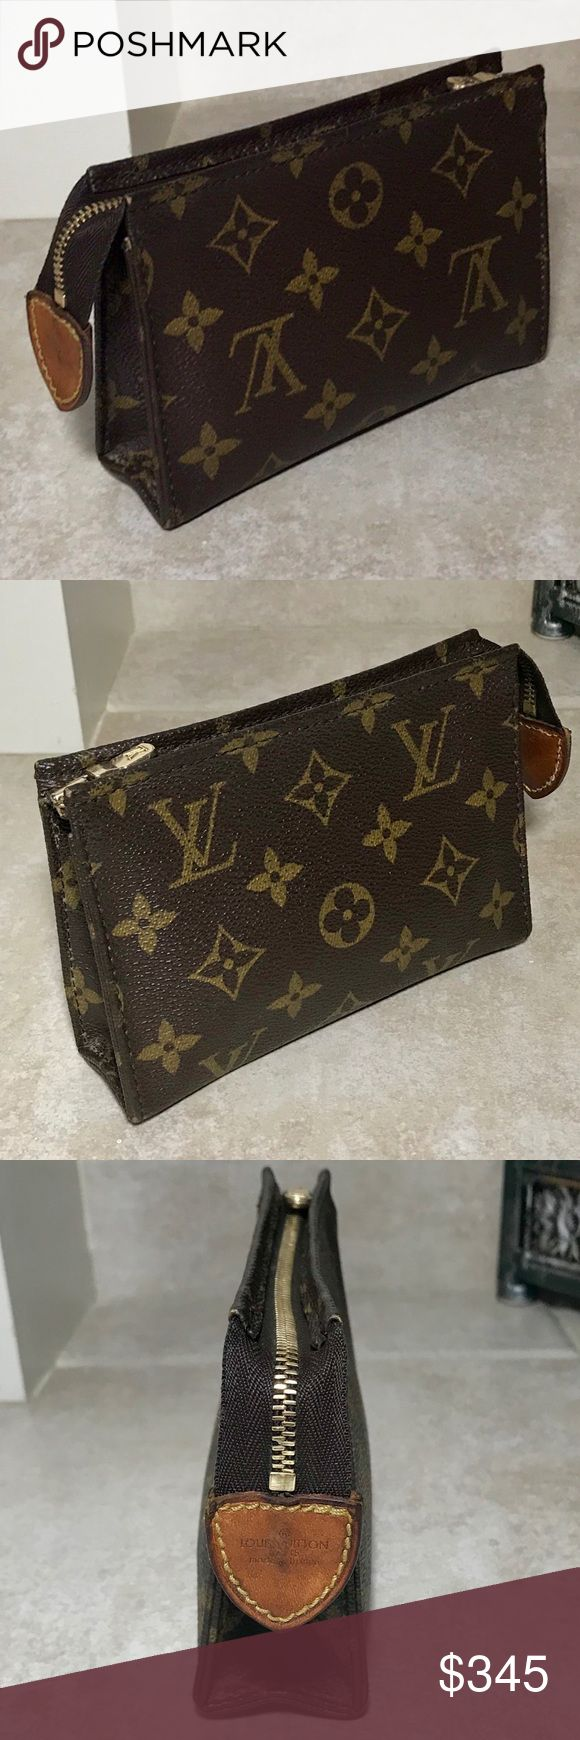 Louis Vuitton Poche Toilette 15 Cosmetic Pouch (With